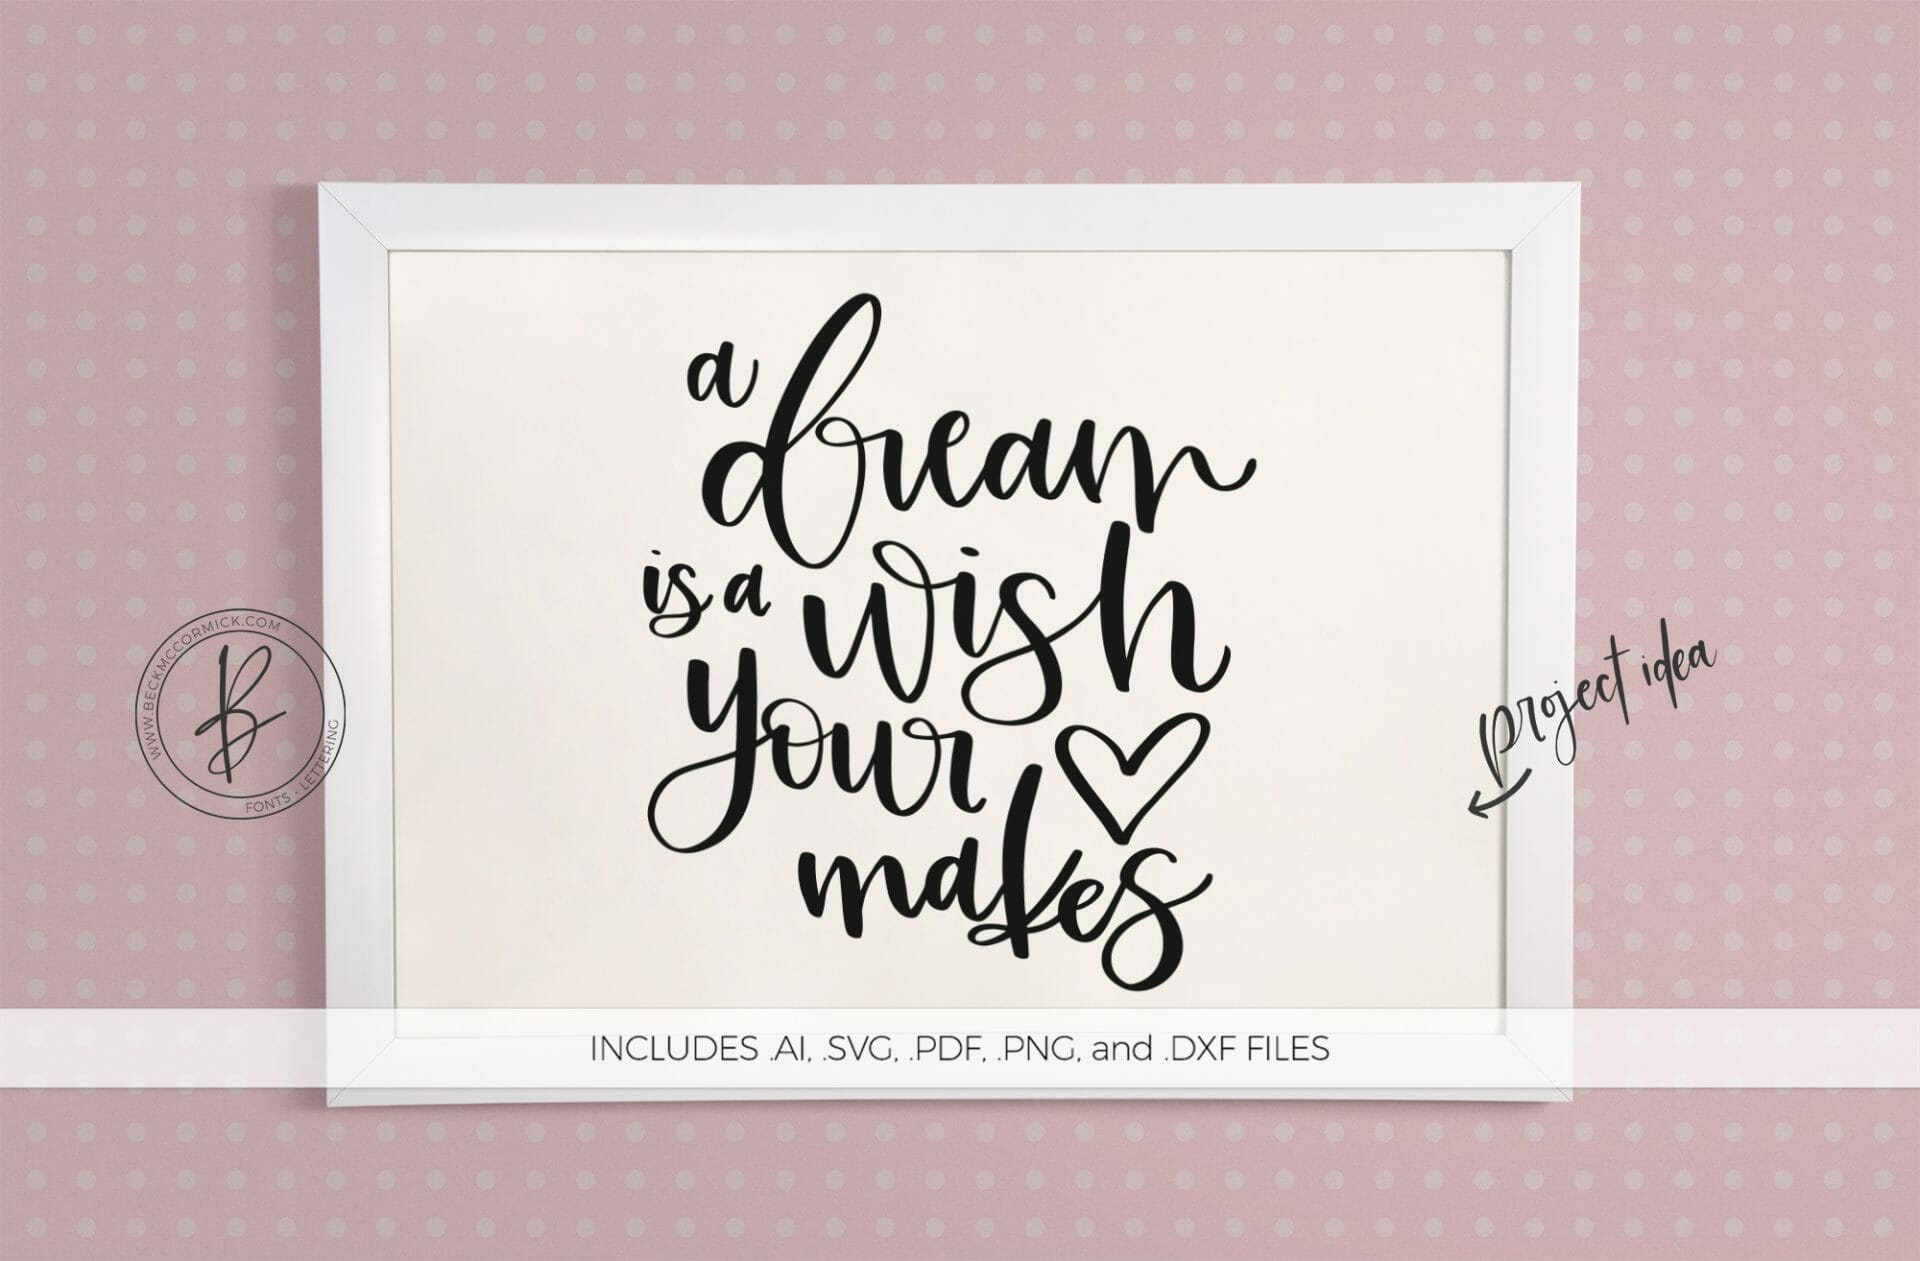 A Dream Is A Wish Your Heart Makes Svg Silhouette Cut File Instant Download For Cricut Instant Download Silhouette Disney Svg Beck Mccormick